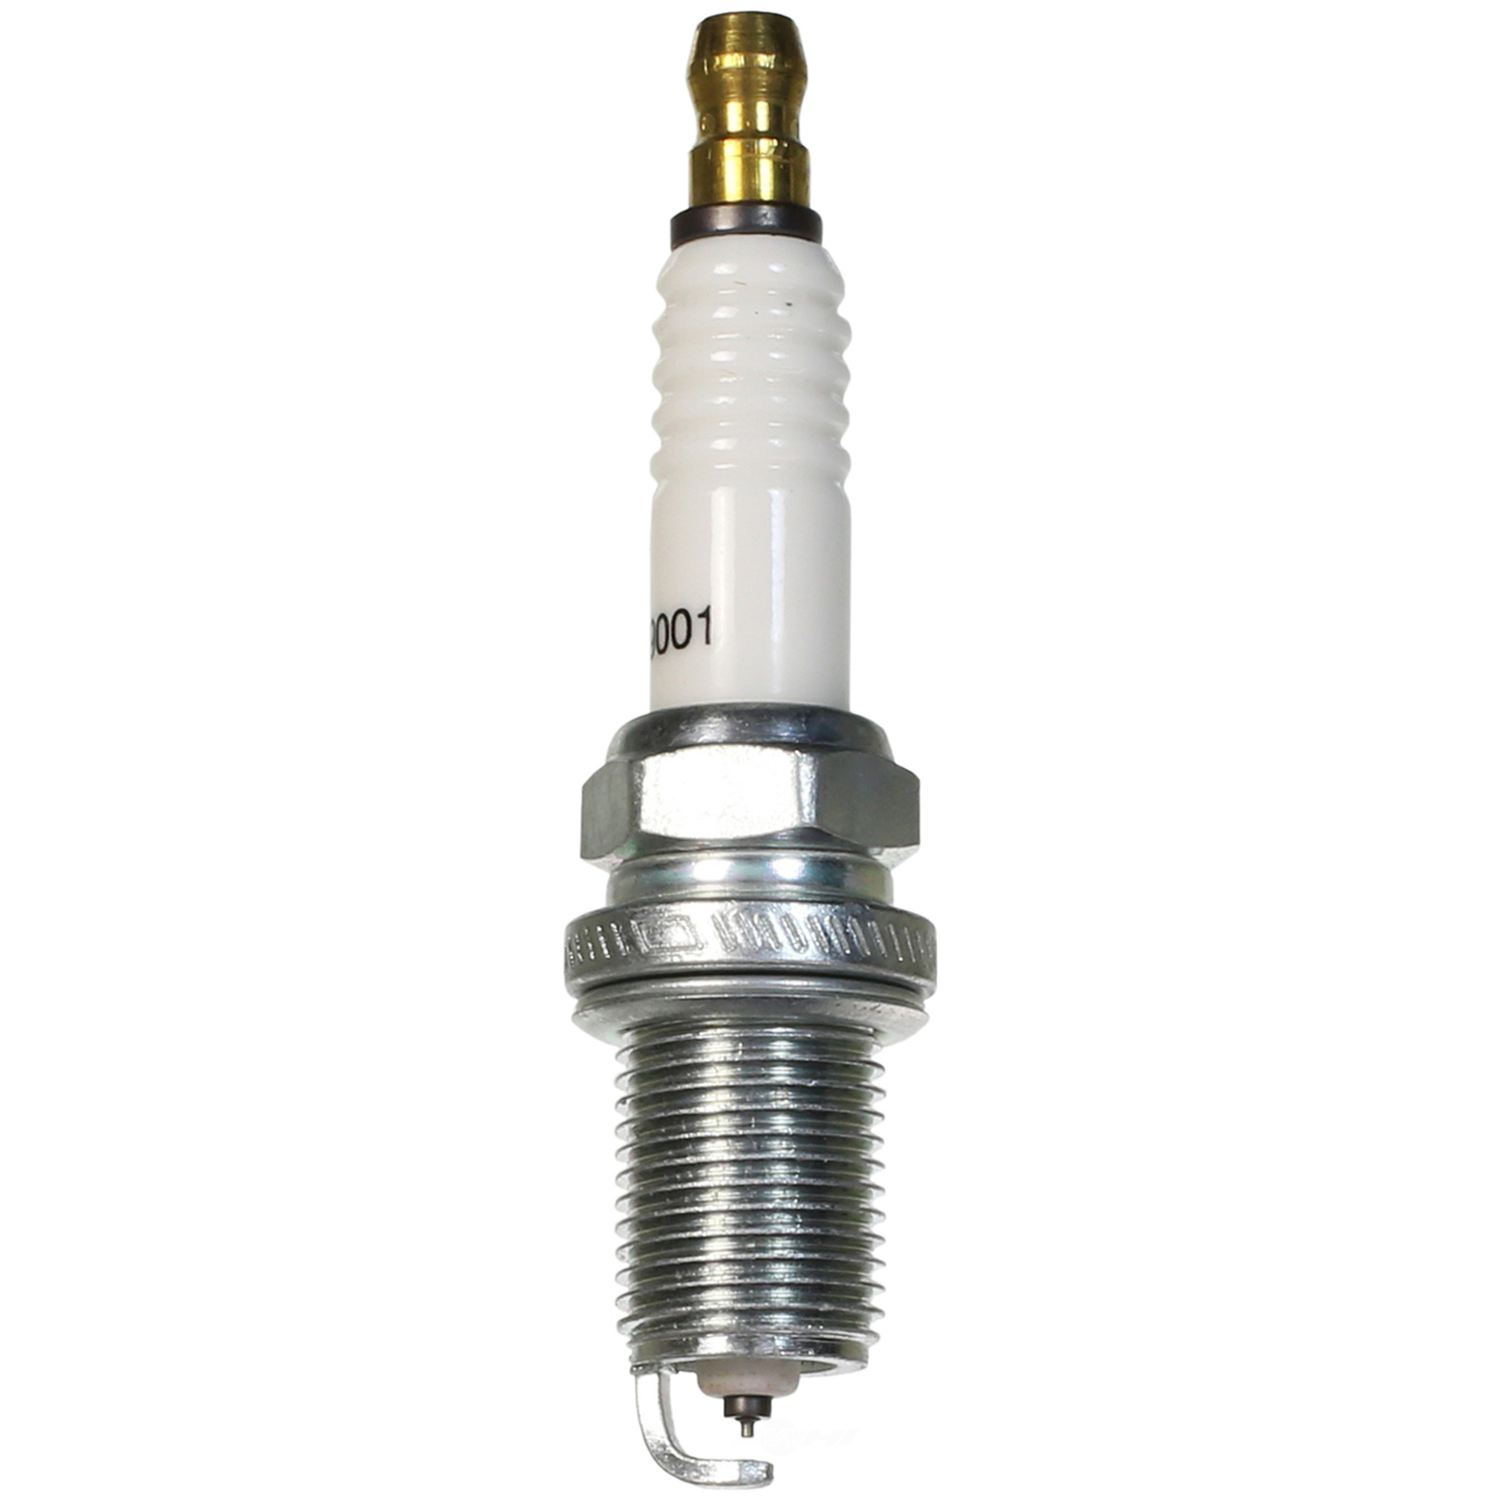 how to read champion spark plug numbers